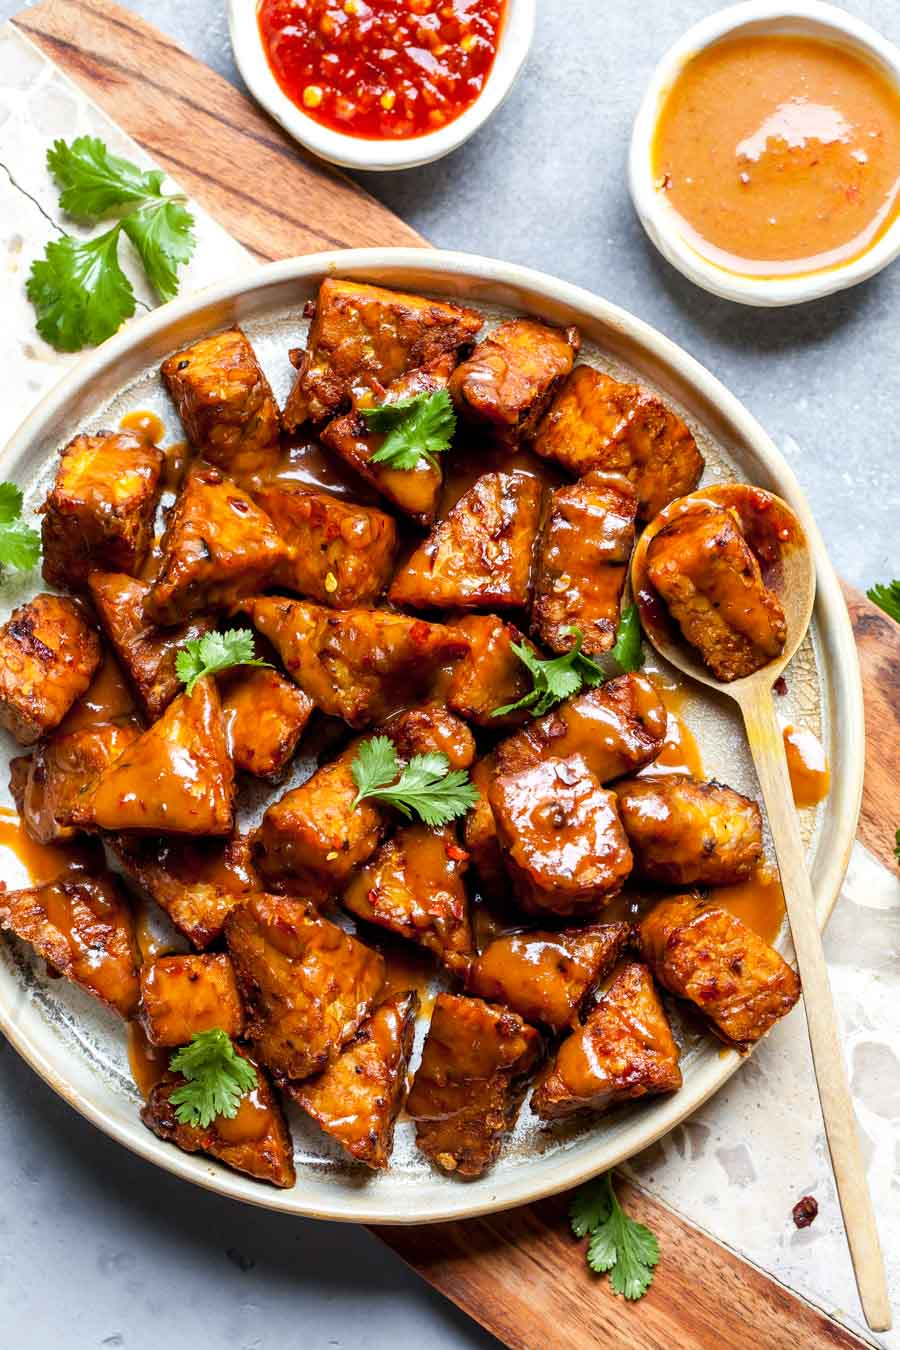 Soy-marinated tempeh topped with peanut-ginger sauce